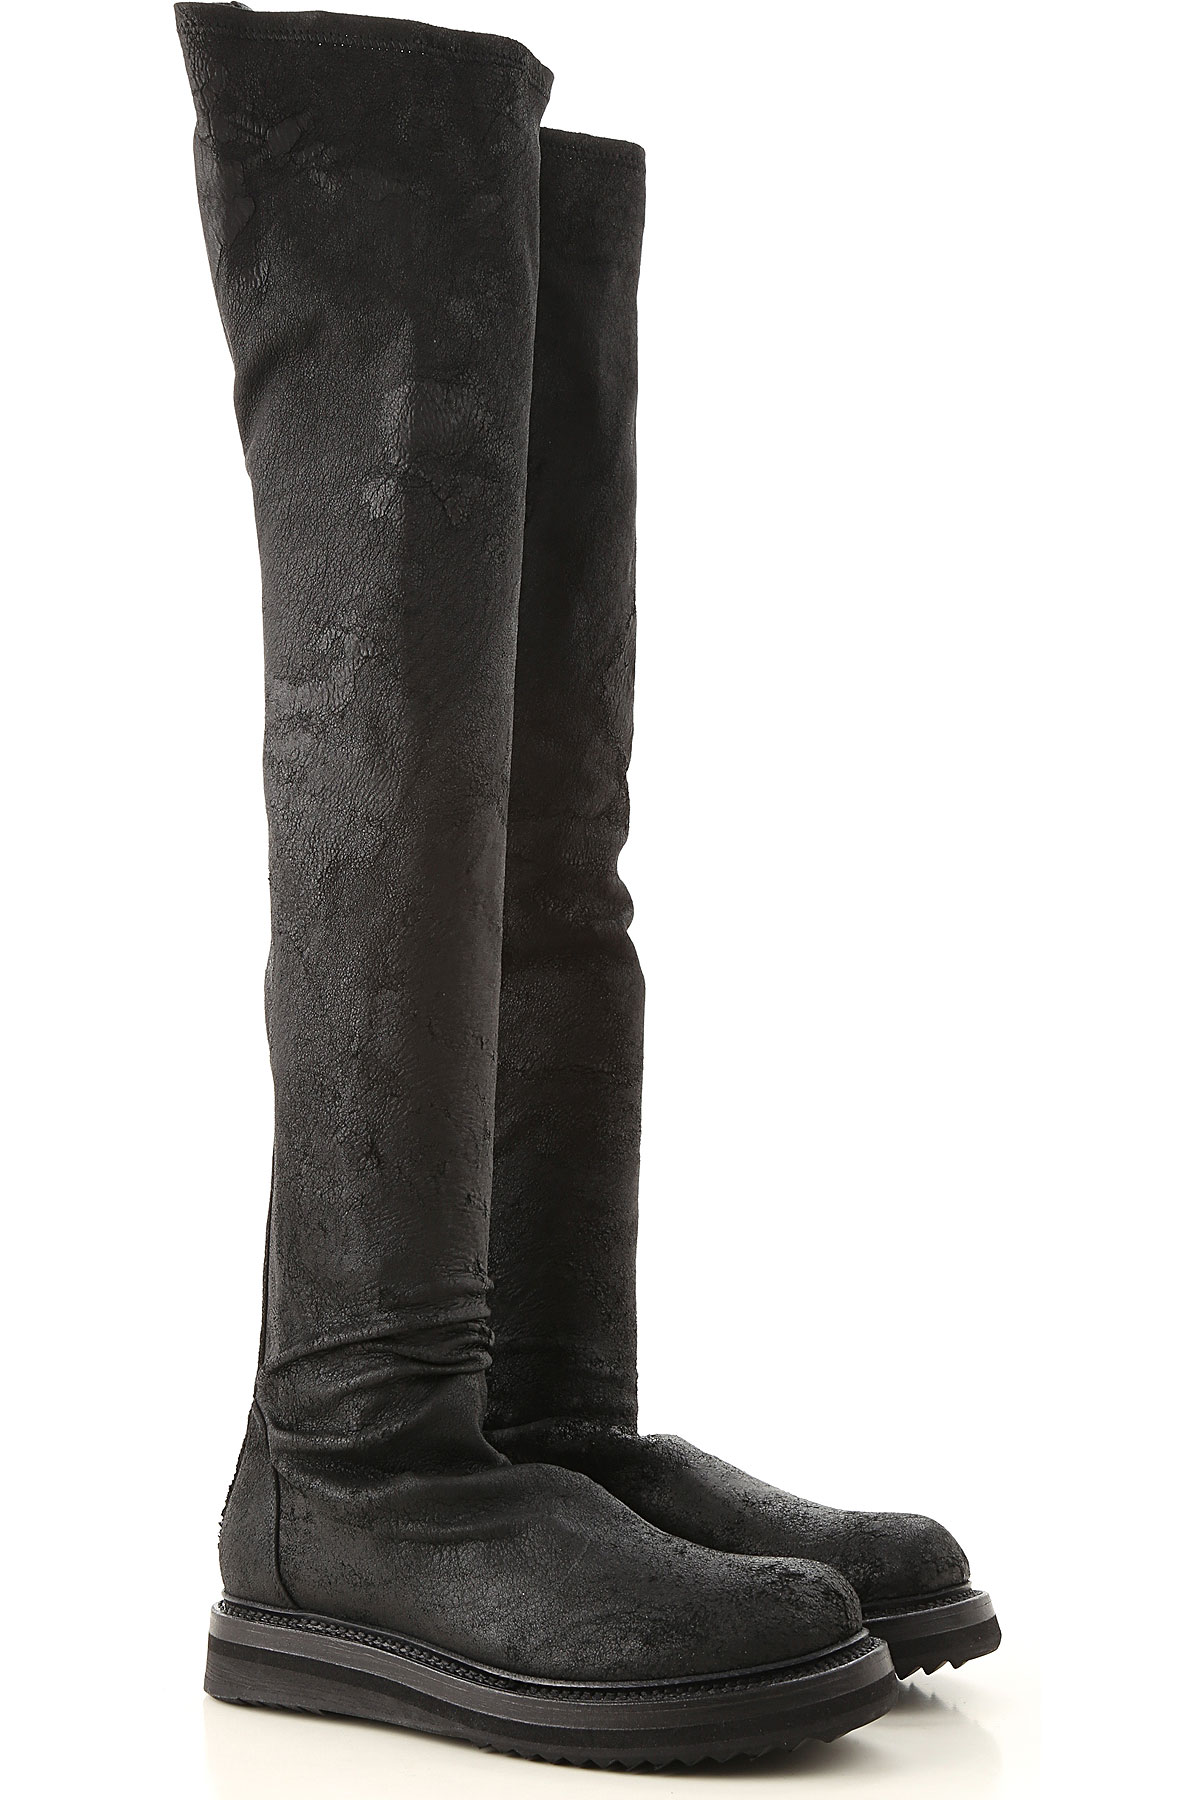 Image of Rick Owens Boots for Women, Booties, Black, Suede leather, 2017, 10 6 7 8 9